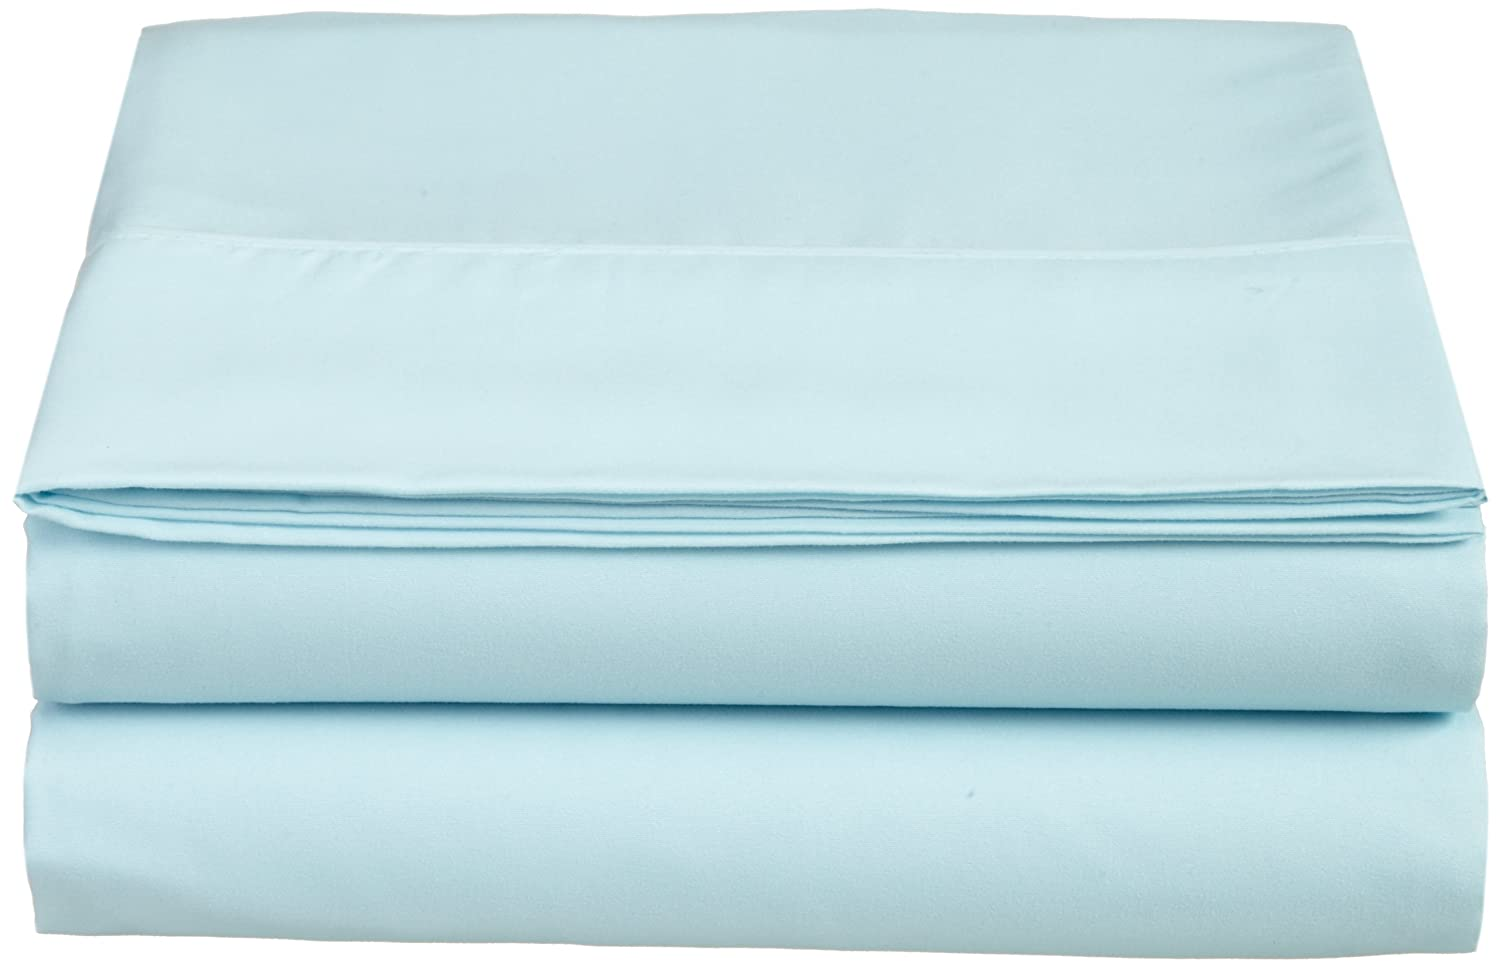 Cathay Luxury Silky Soft Polyester Single Flat Sheet, Twin Size, Aqua Cathay Home Fashions 108072-FL-TAQ